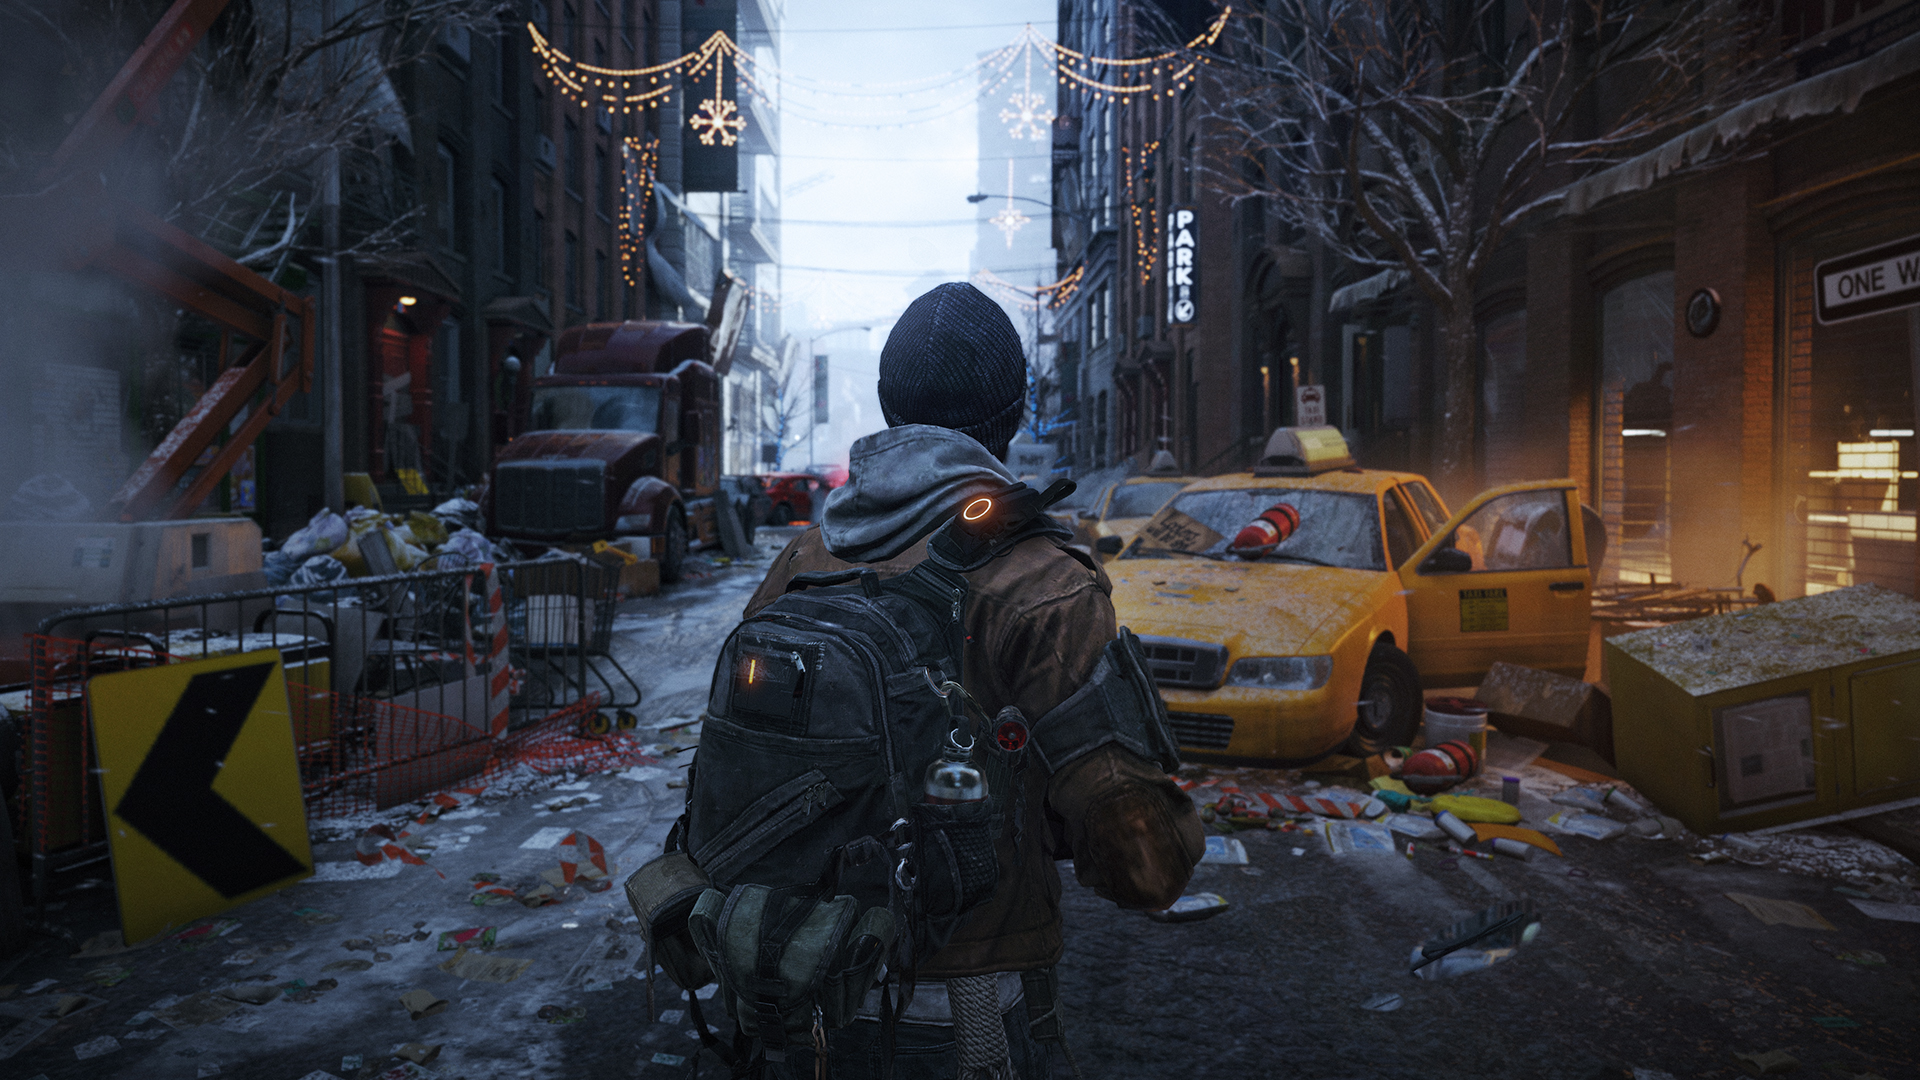 Tom Clancy's The Division delayed until 2015